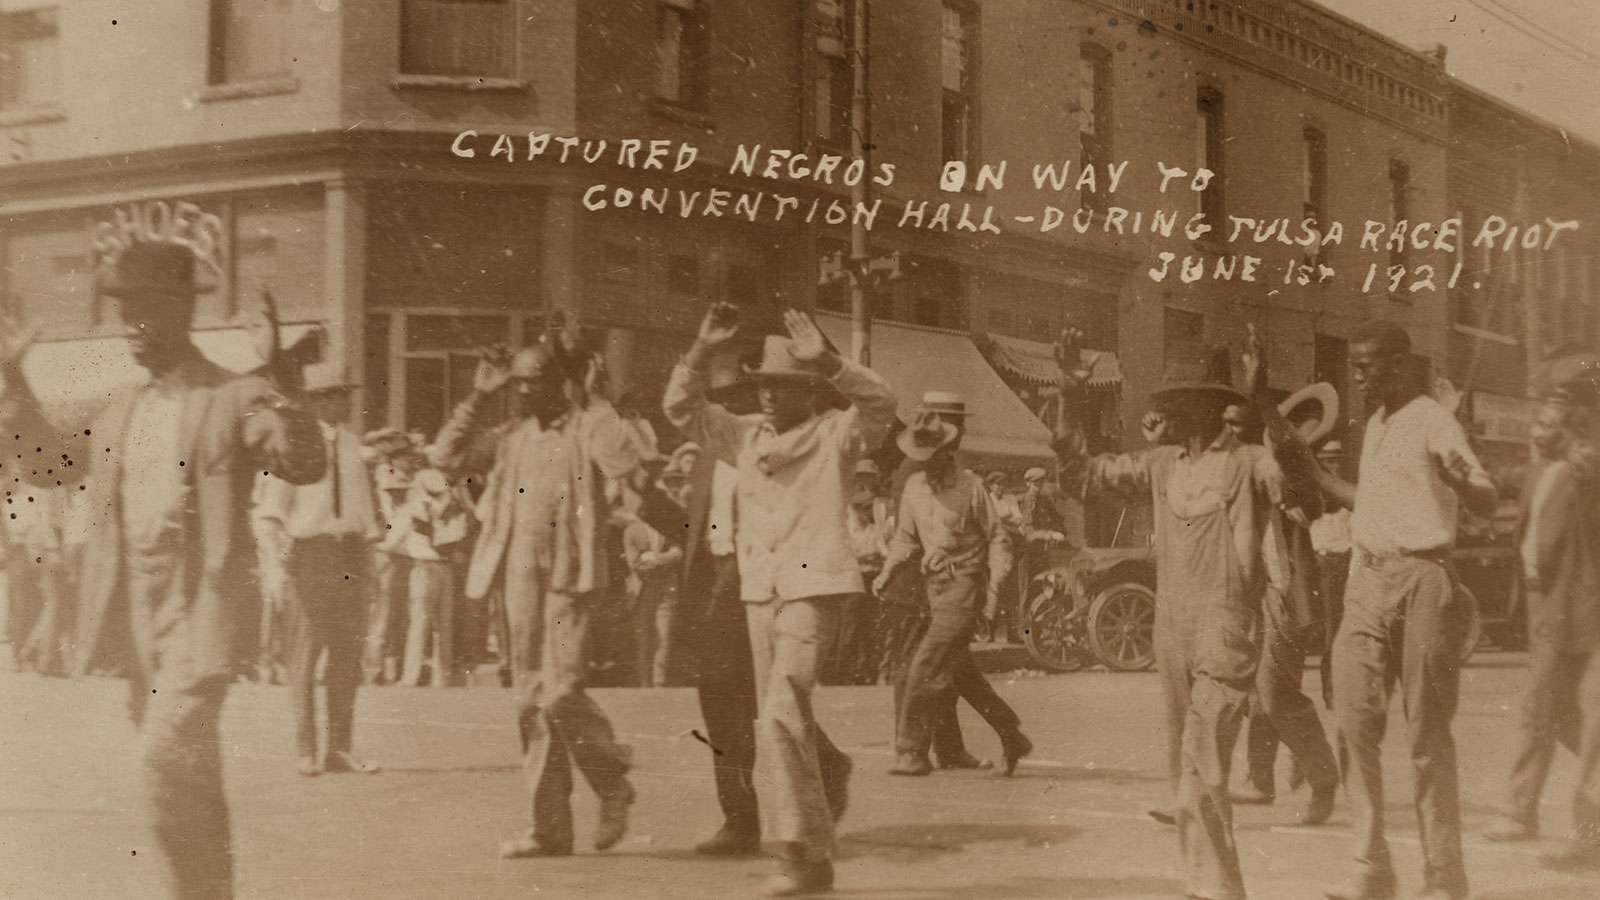 'Captured Negros on Way to Convention Hall - During Tulsa Race Riot, June 1st, 1921'